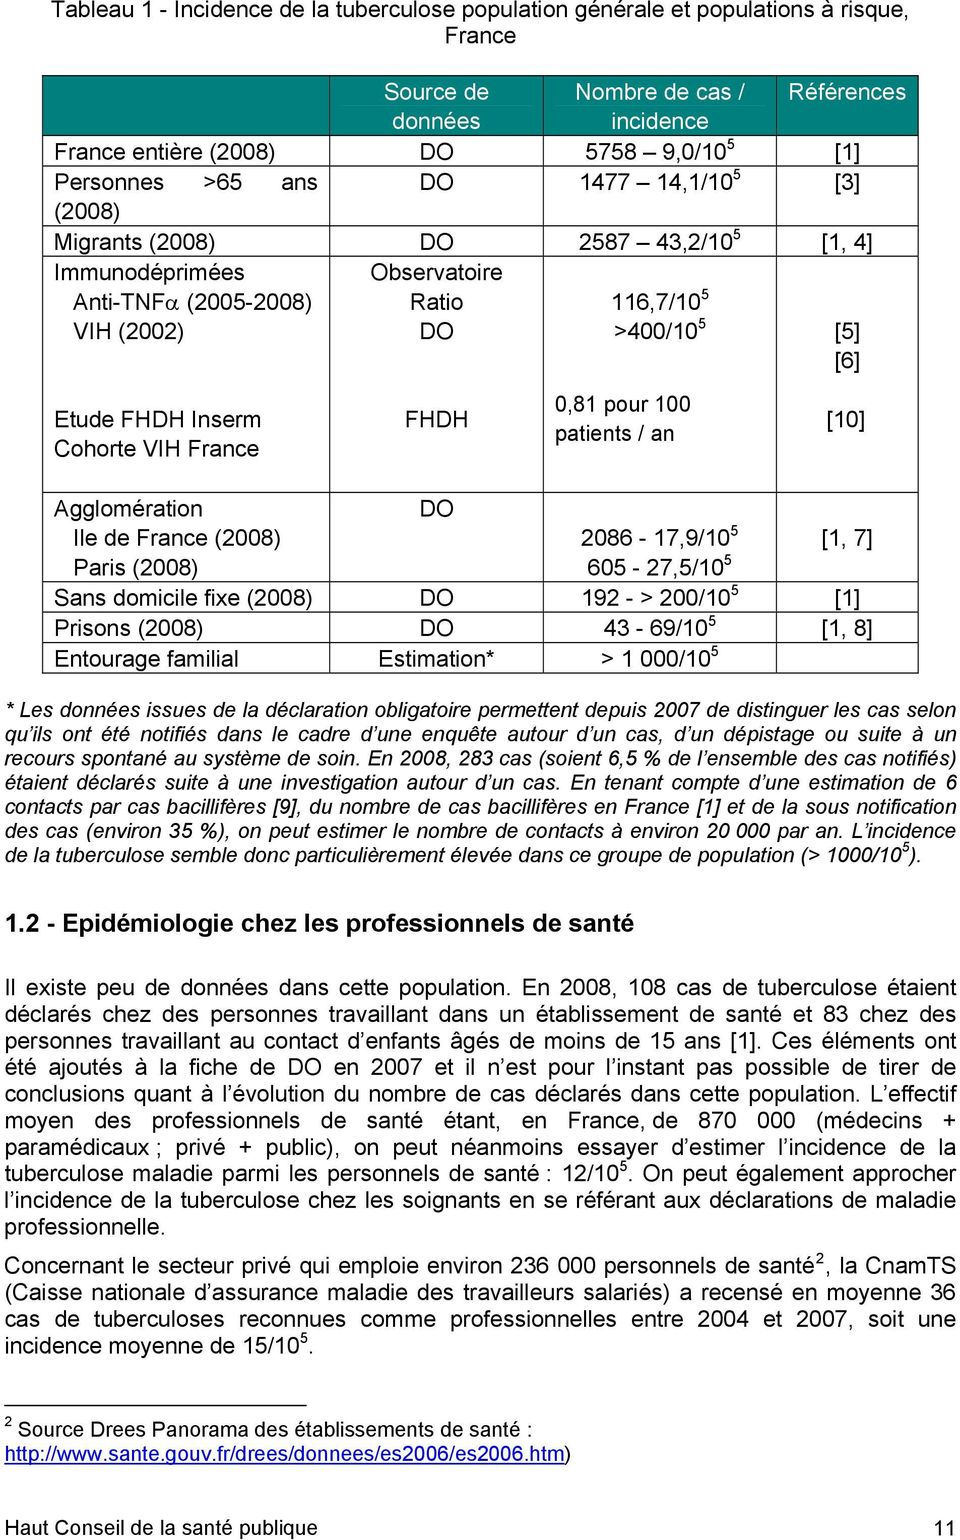 Cohorte VIH France FHDH 0,81 pour 100 patients / an [10] Agglomération Ile de France (2008) Paris (2008) DO 2086-17,9/10 5 605-27,5/10 5 [1, 7] Sans domicile fixe (2008) DO 192 - > 200/10 5 [1]